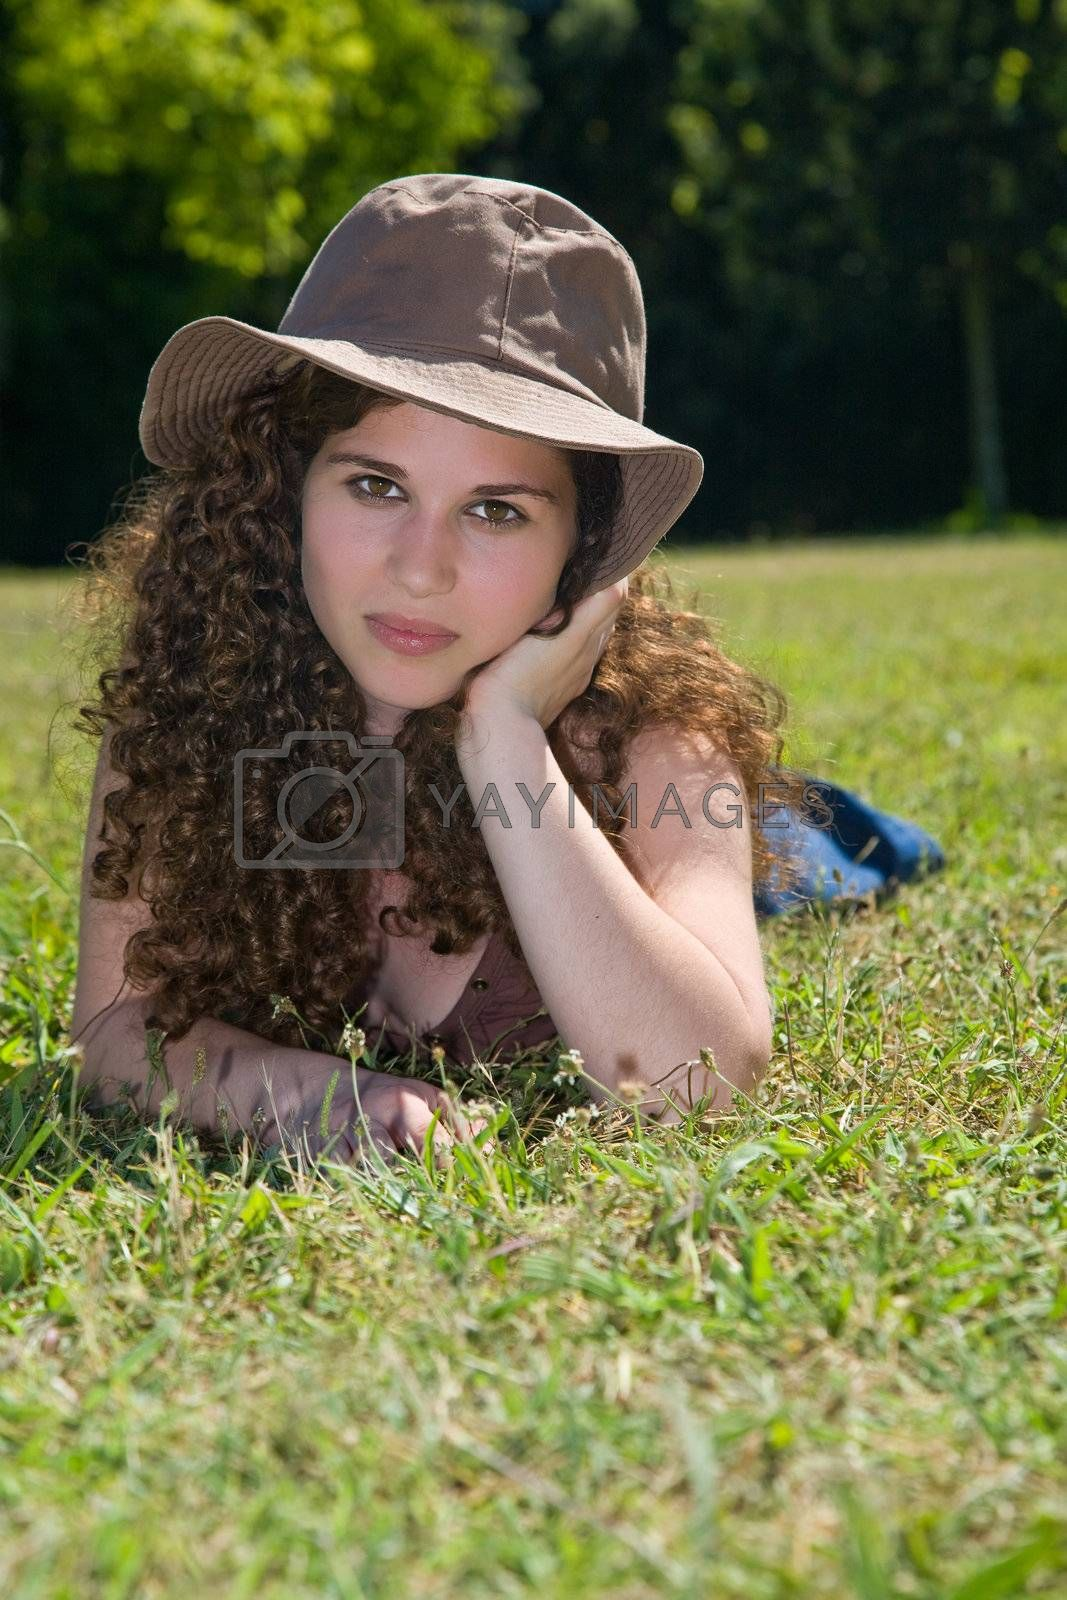 Pretty young girl with a hat, laying down in the grass on a park.